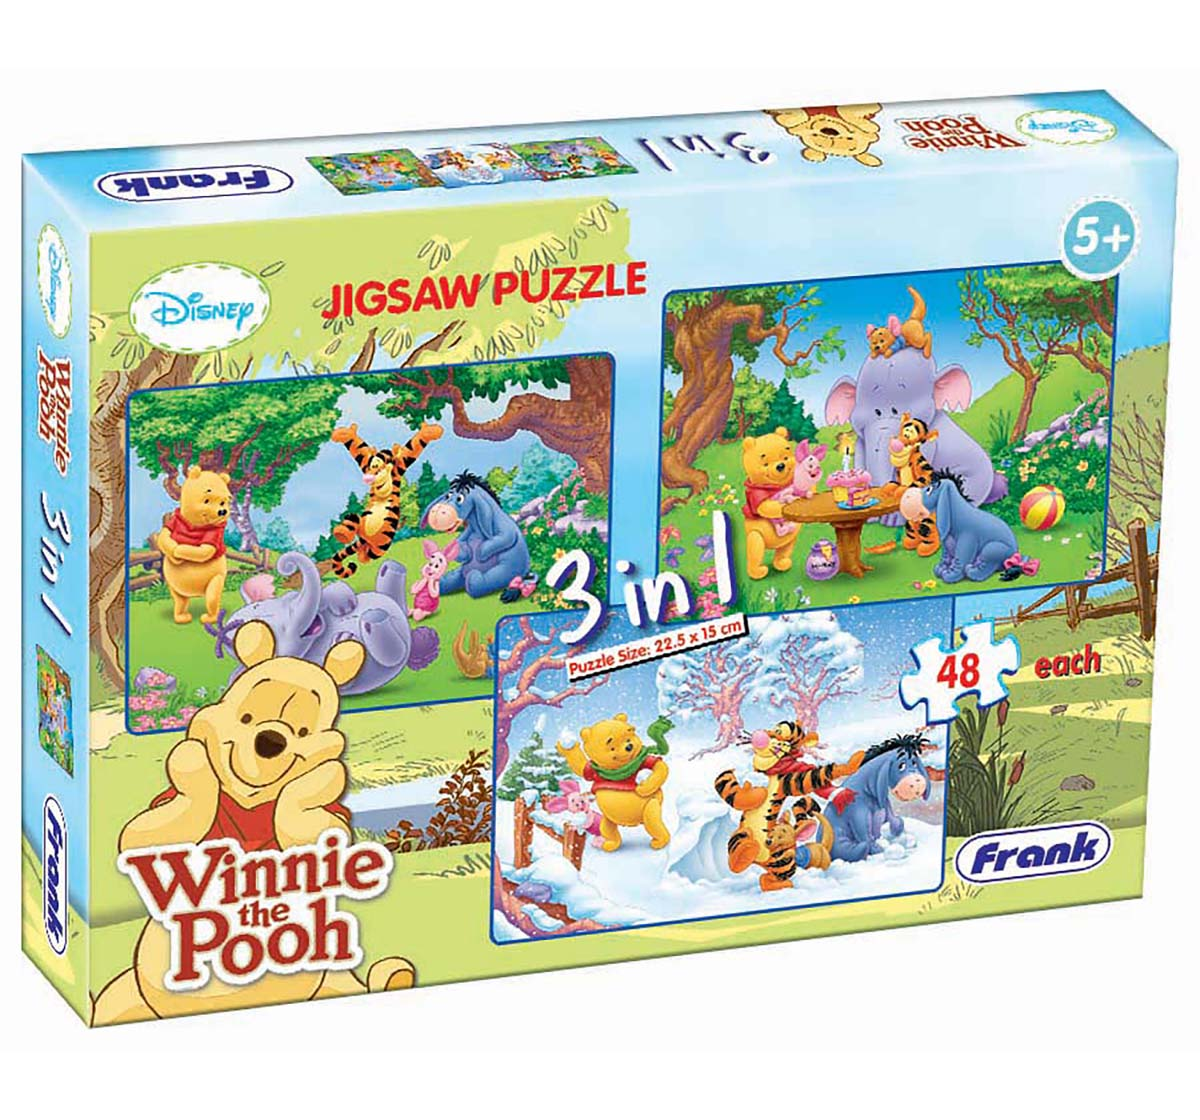 Frank | Frank Winnie The Pooh 3 In 1 Puzzle Puzzles for Kids Age 5Y+